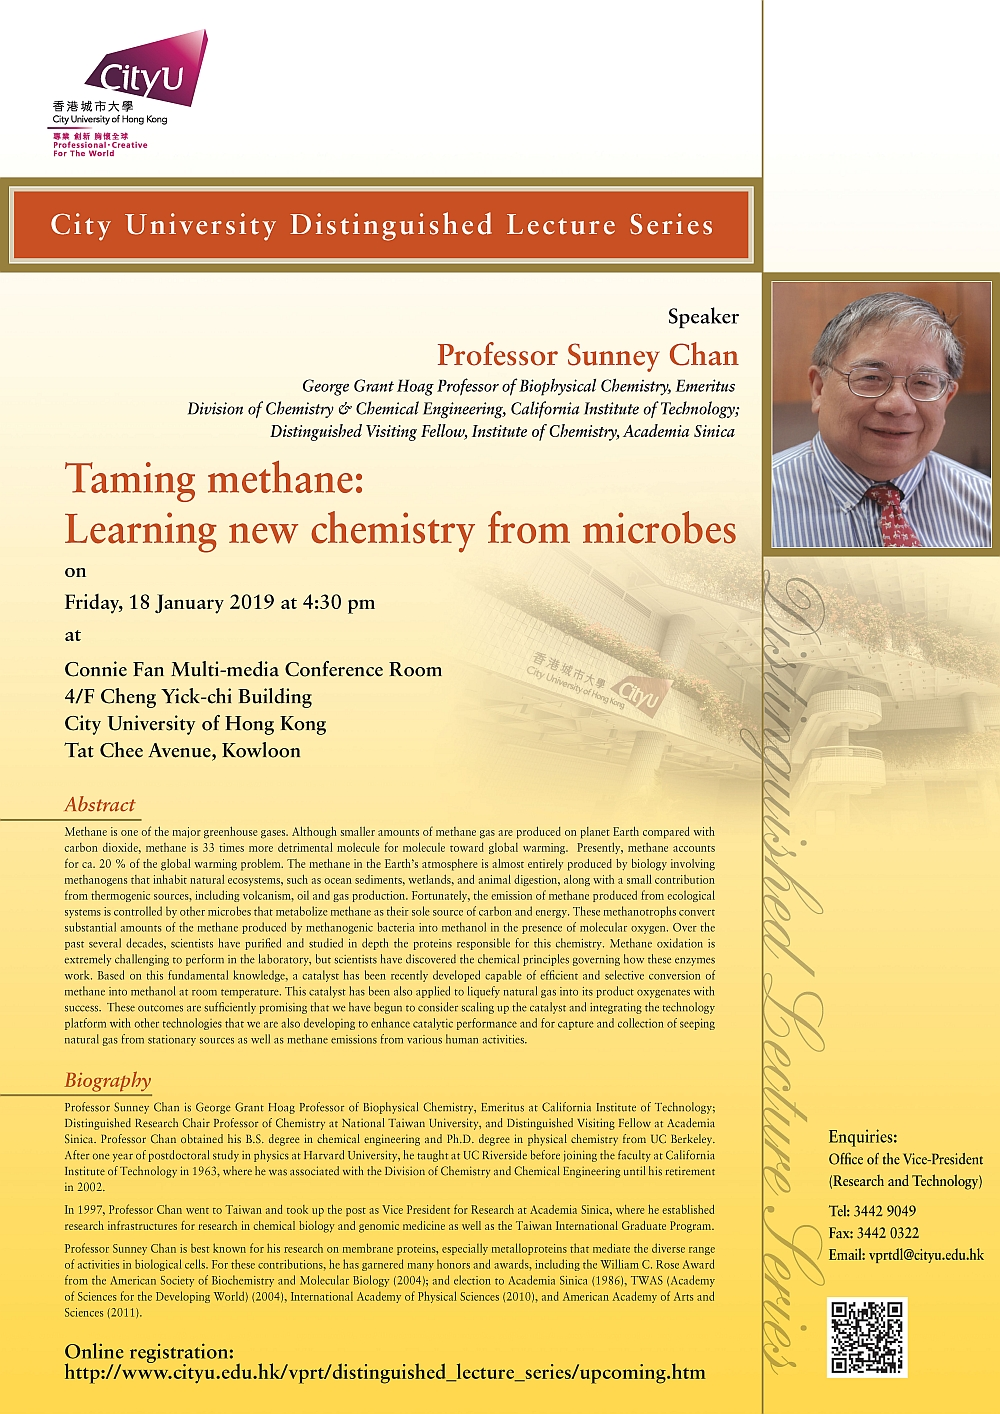 Title: Taming methane: Learning new chemistry from microbes Speaker: Professor Sunney Chan George Grant Professor of Biophysical Chemistry, EmeritusDivision of Chemistry & Chemical Engineering, California Institute of Technology;Distinguished Visiting Fellow, Institute of Chemistry, Academia Sinica Date: 18 January 2019 (Friday) Time: 4:15 pm – 4:30 pm (Tea reception)4:30 pm – 6:00 pm (Lecture) Venue: Connie Fan Multi-media Conference Room4/F Cheng Yick-chi BuildingCity University of Hong KongTat Chee Avenue, Kowloon